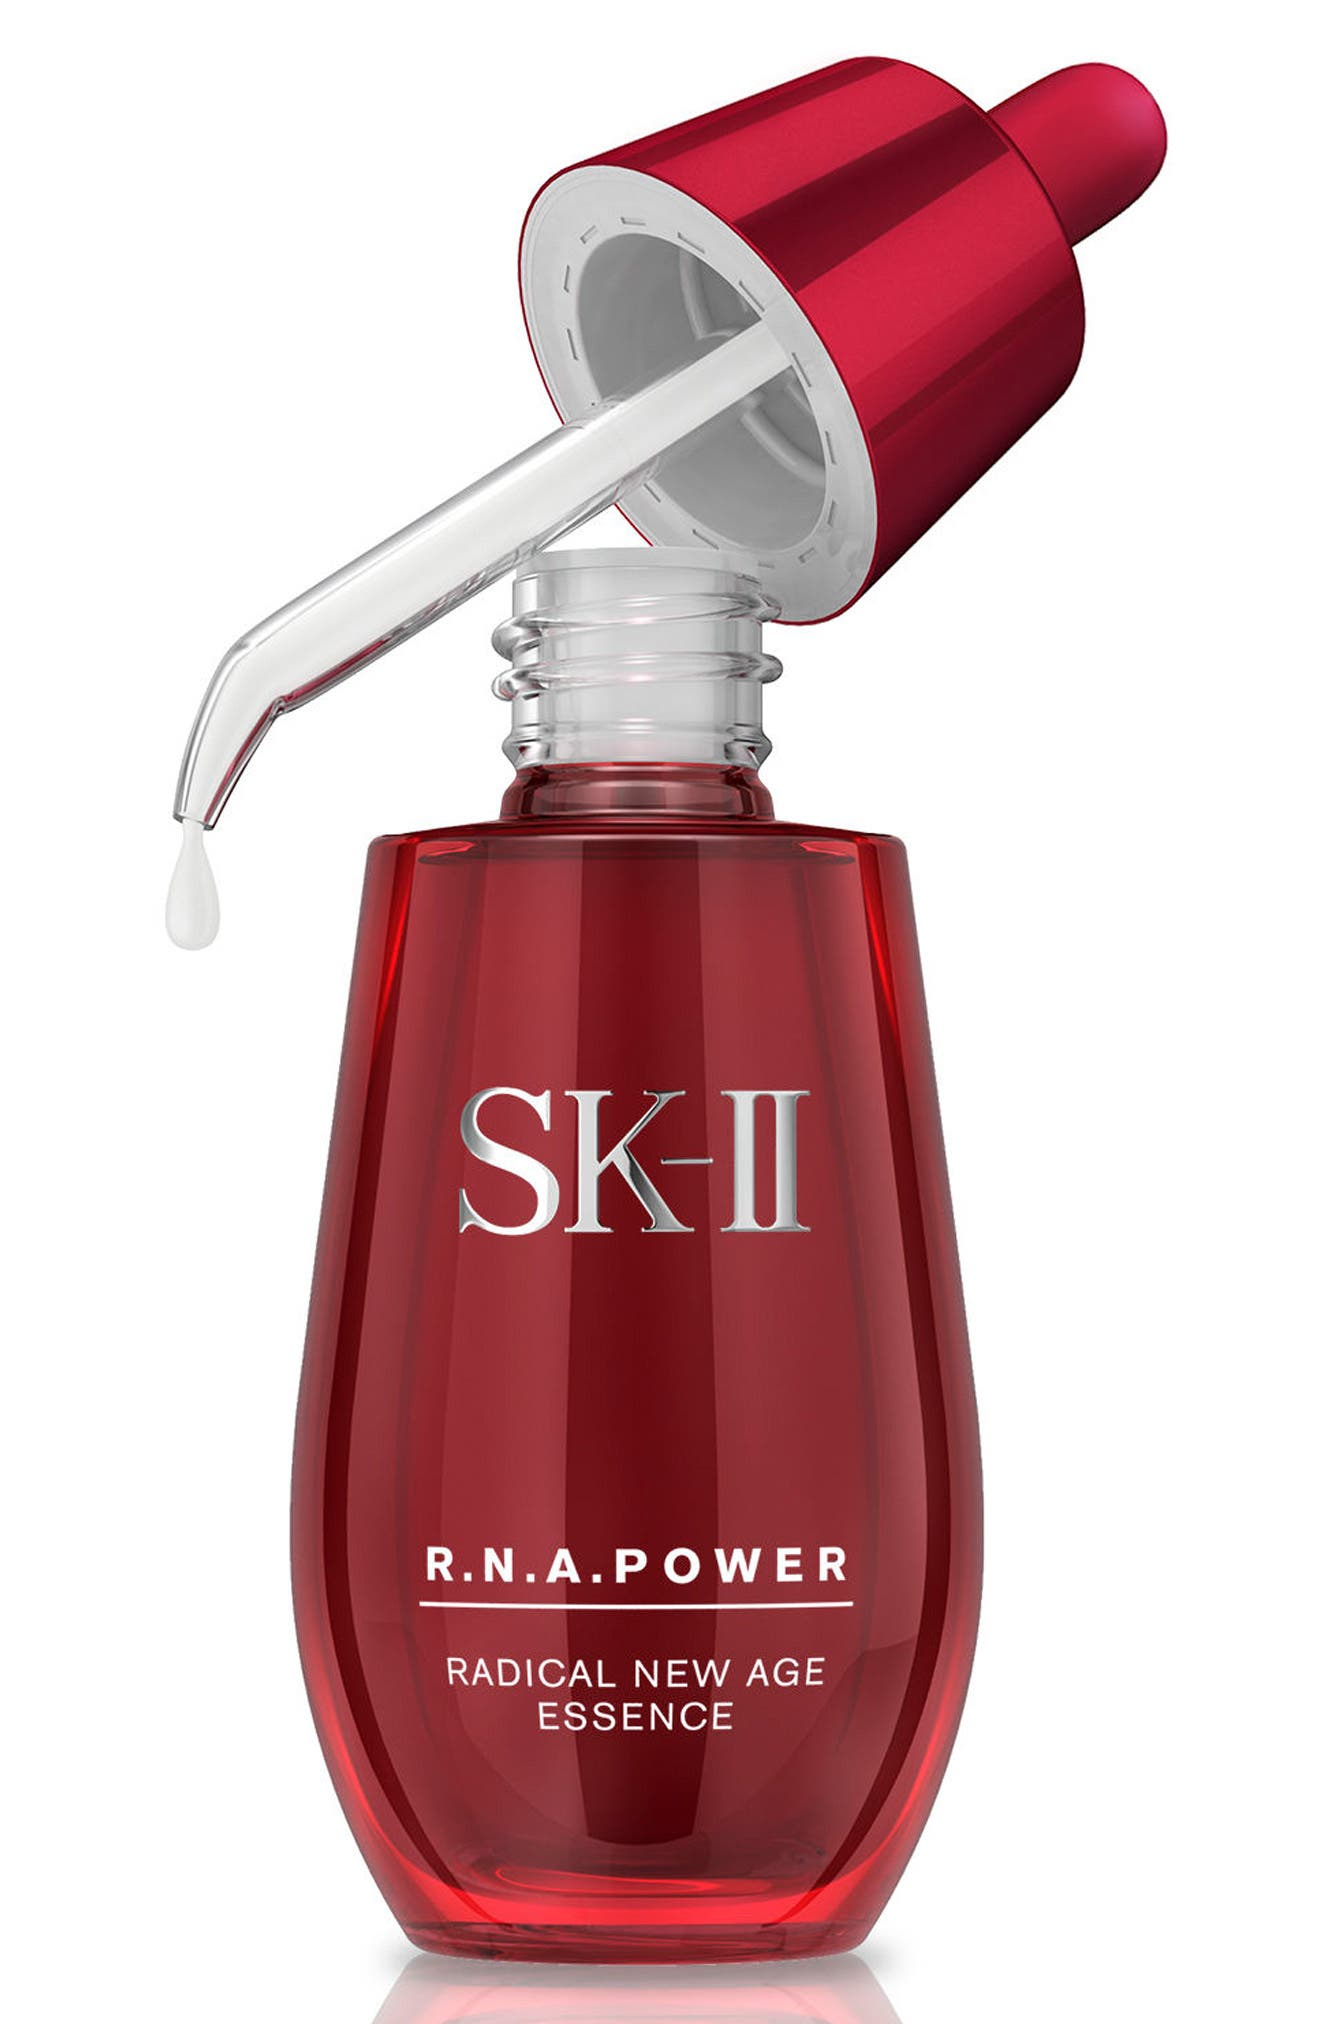 SK-II, R.N.A. Power Radical New Age Essence, Alternate thumbnail 2, color, NO COLOR